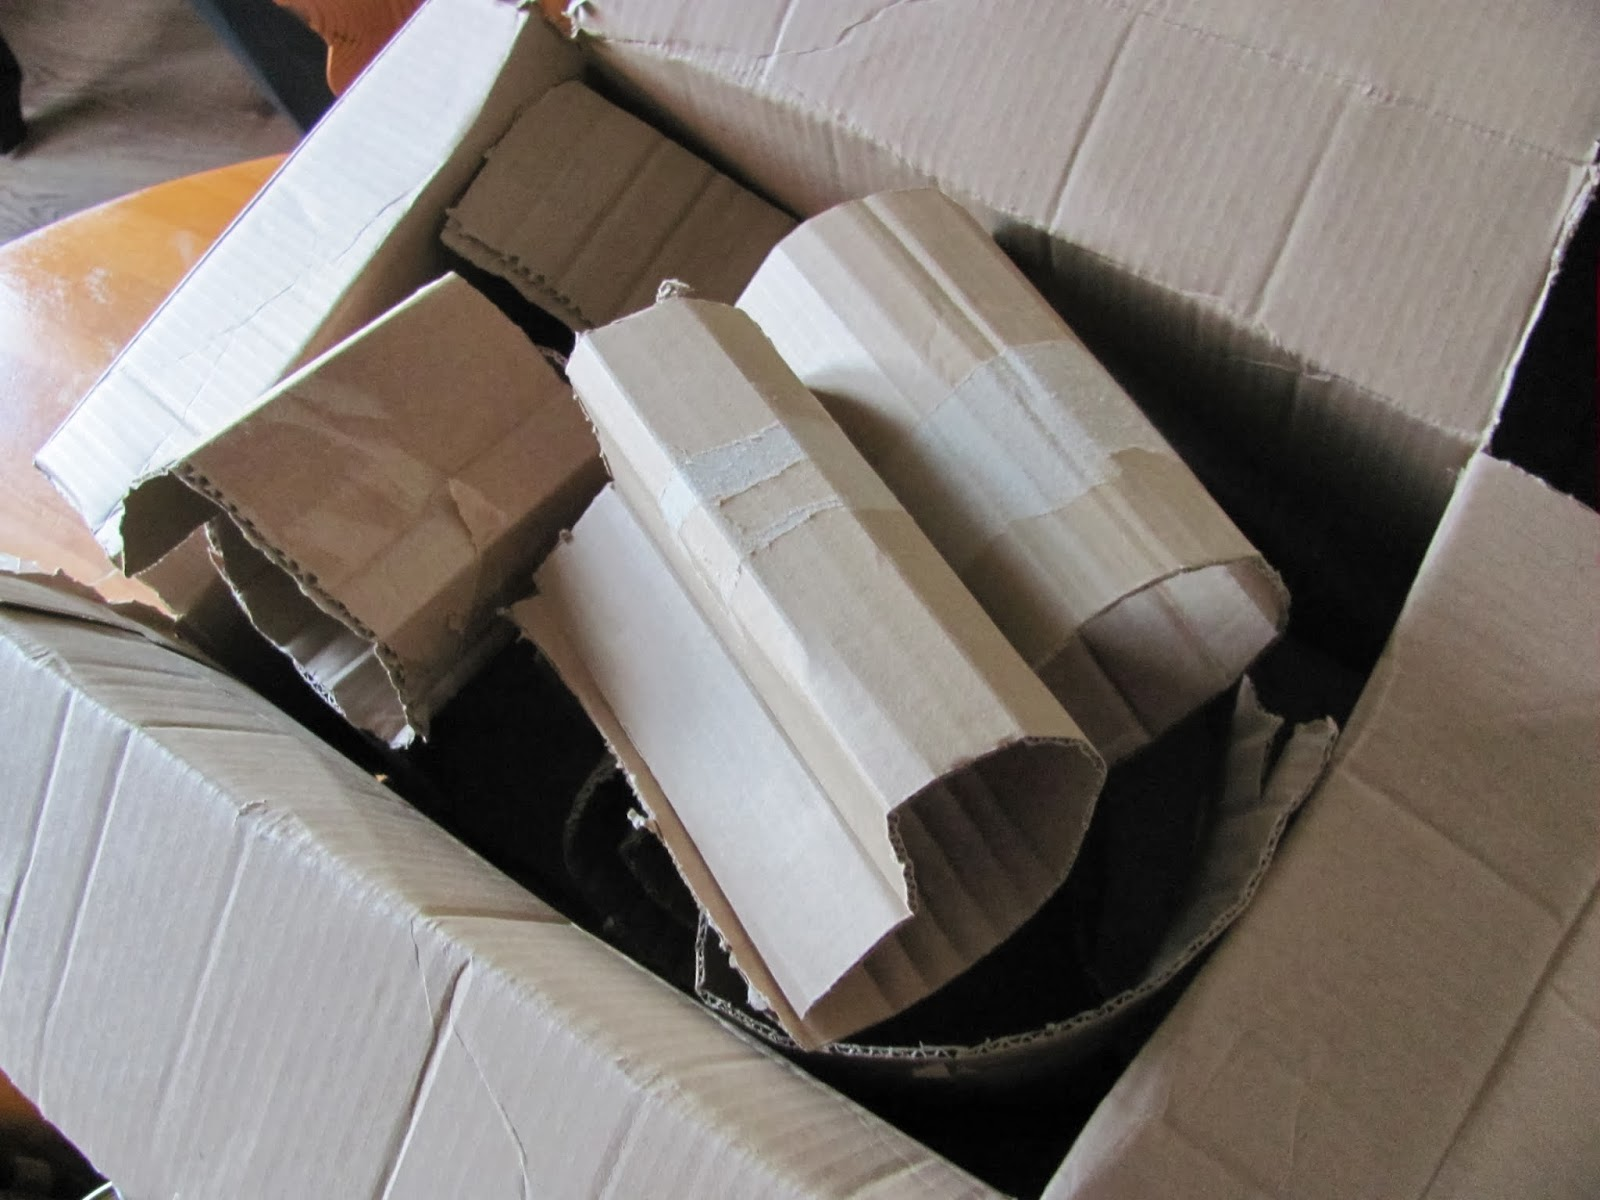 Cardboard packaging ready to burn